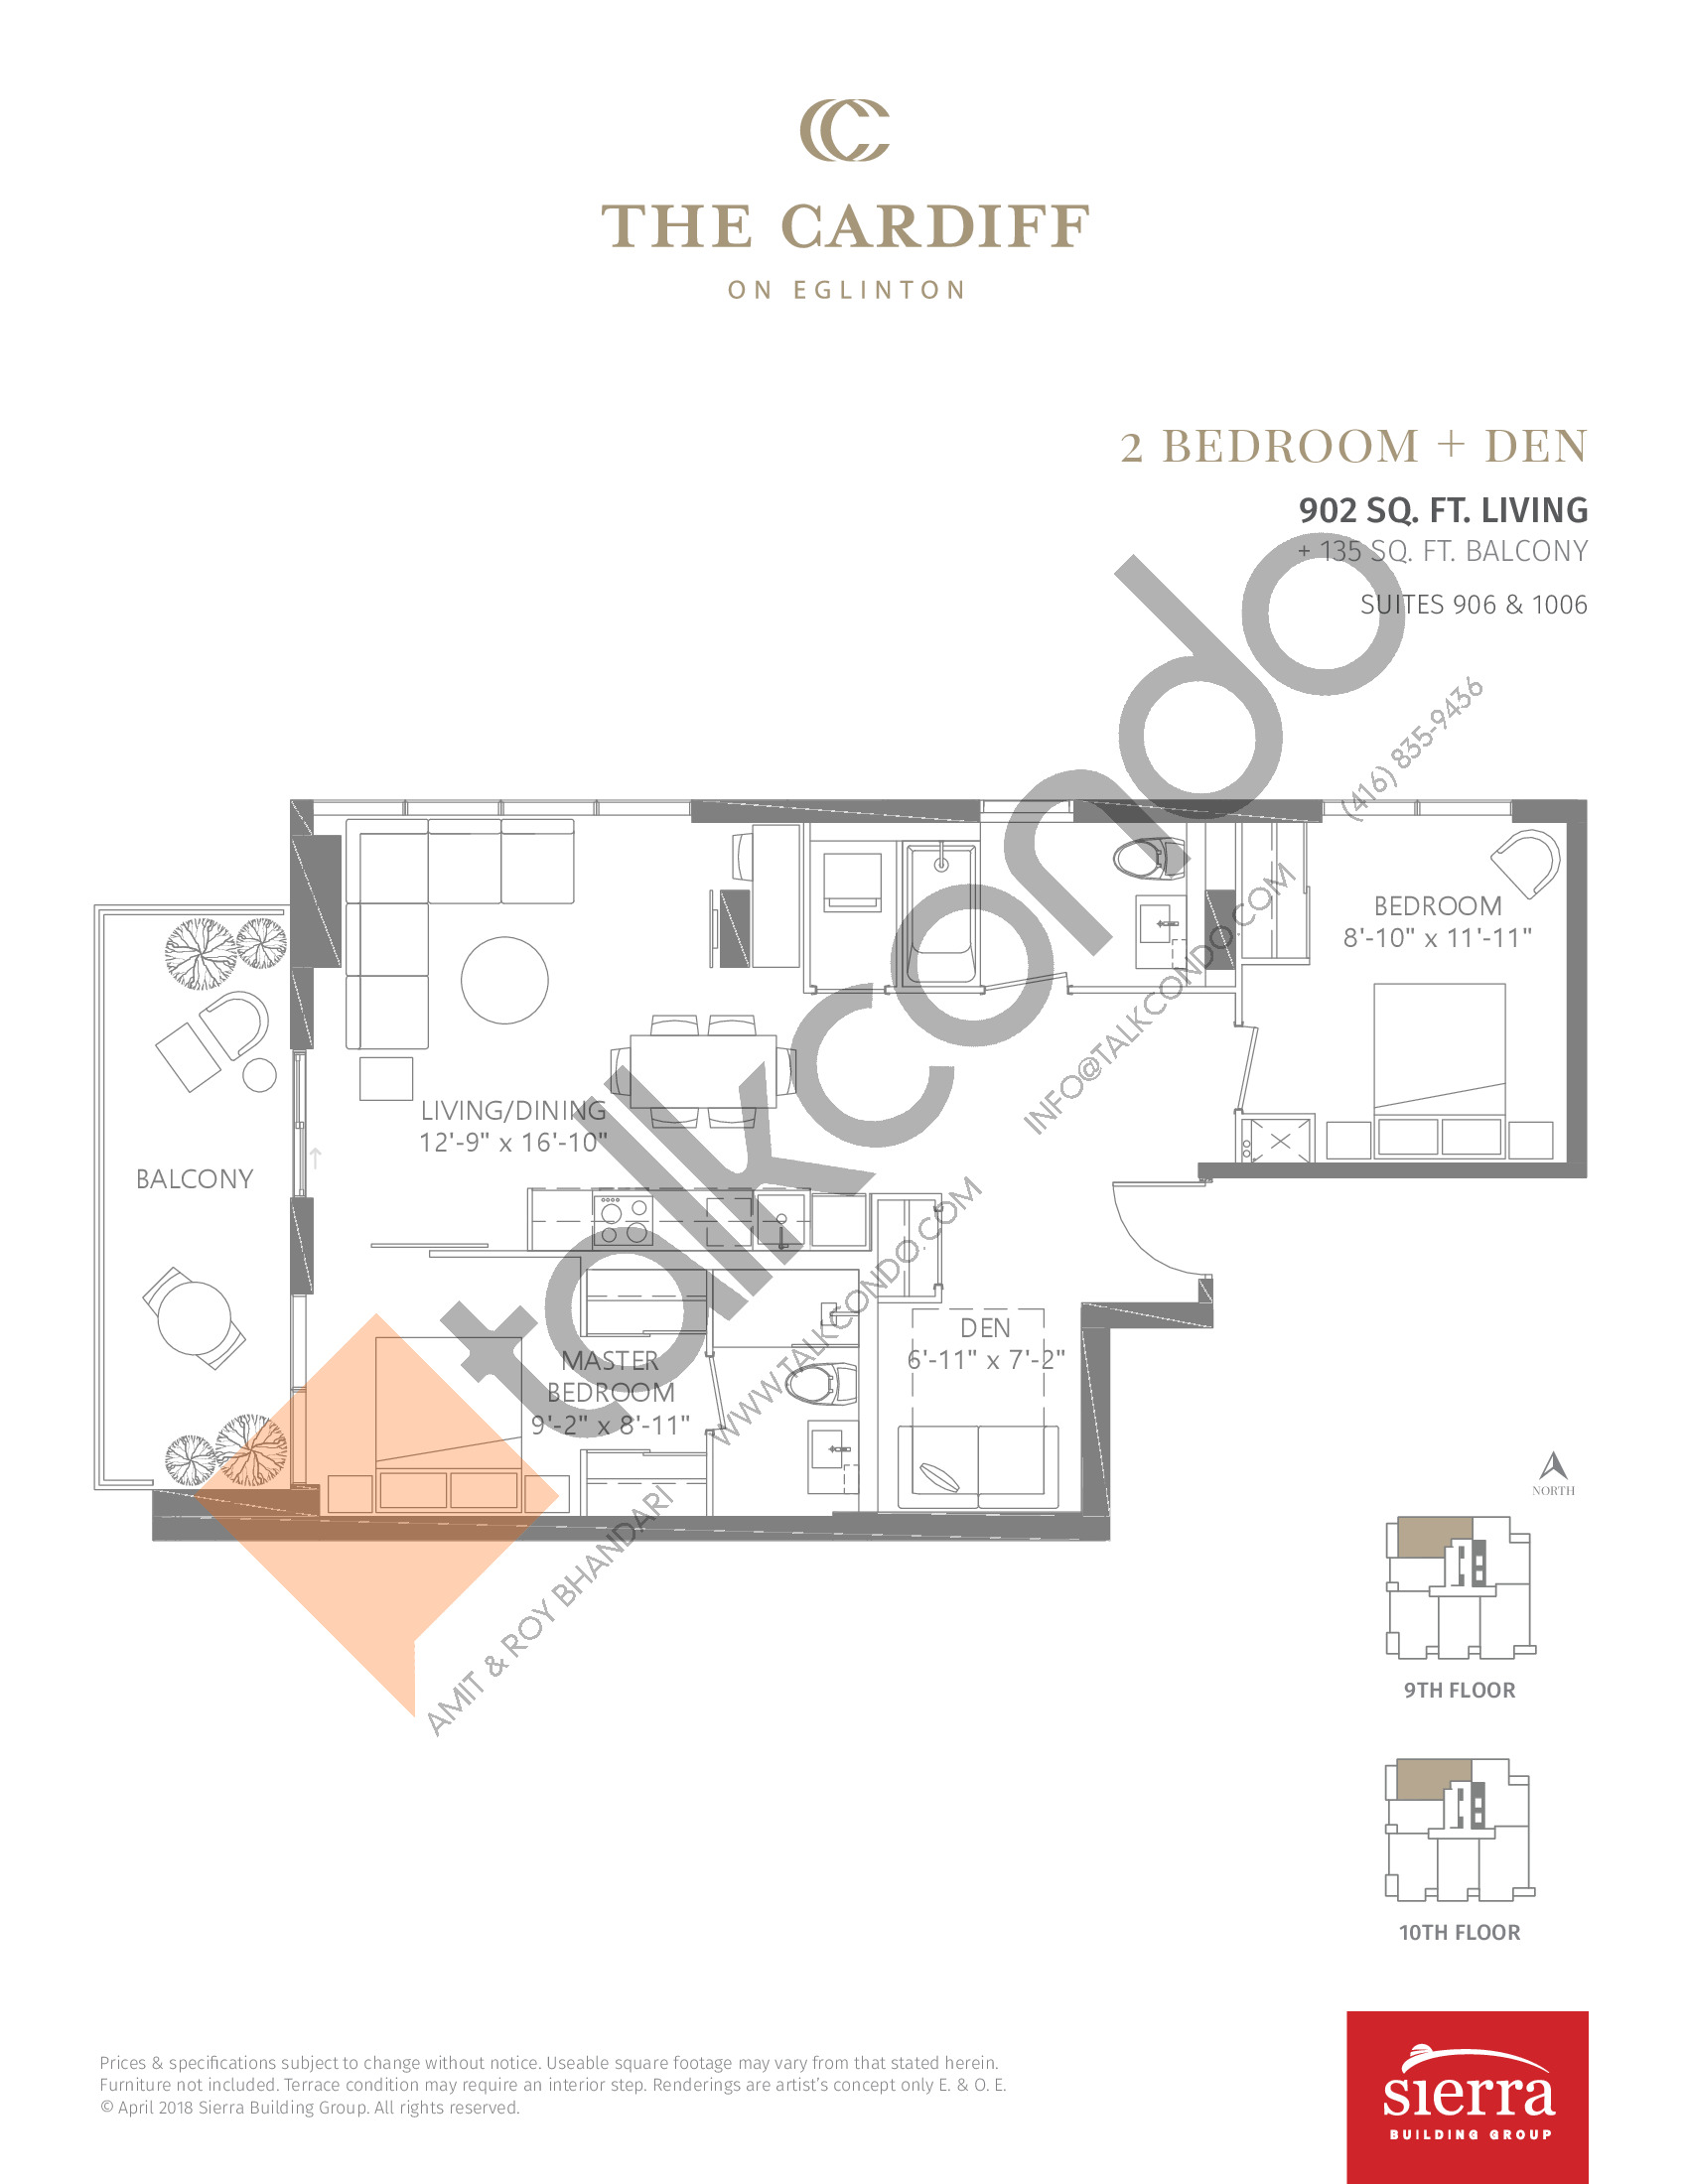 Suites 906 & 1006 Floor Plan at The Cardiff Condos on Eglinton - 902 sq.ft